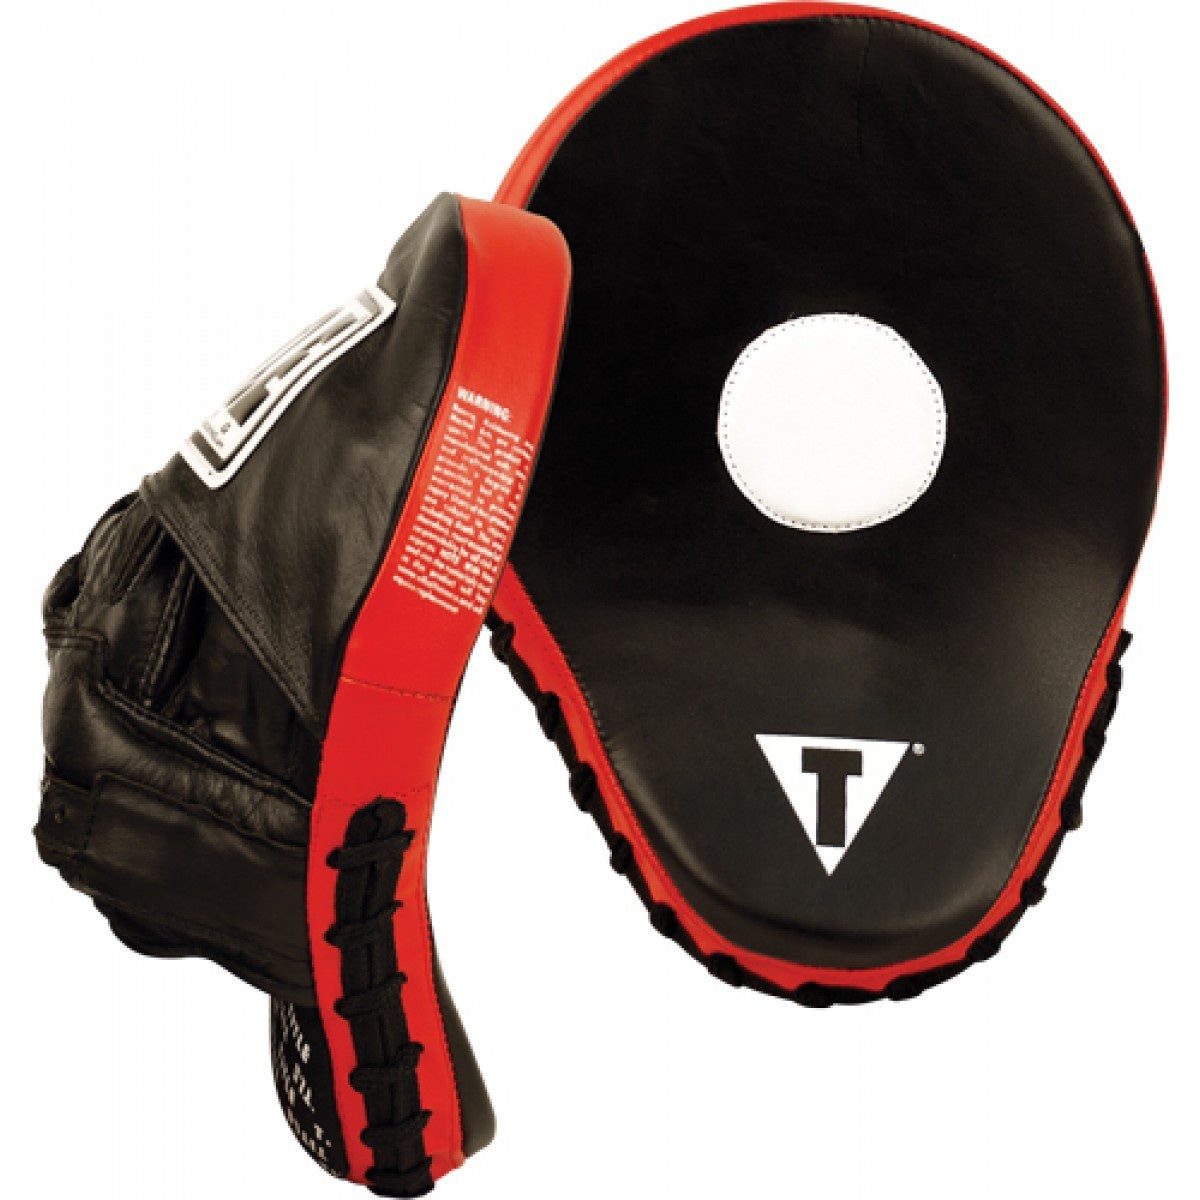 TITLE FOCUS MITTS INCREDI-BALL BLACK/RED - MSM FIGHT SHOP